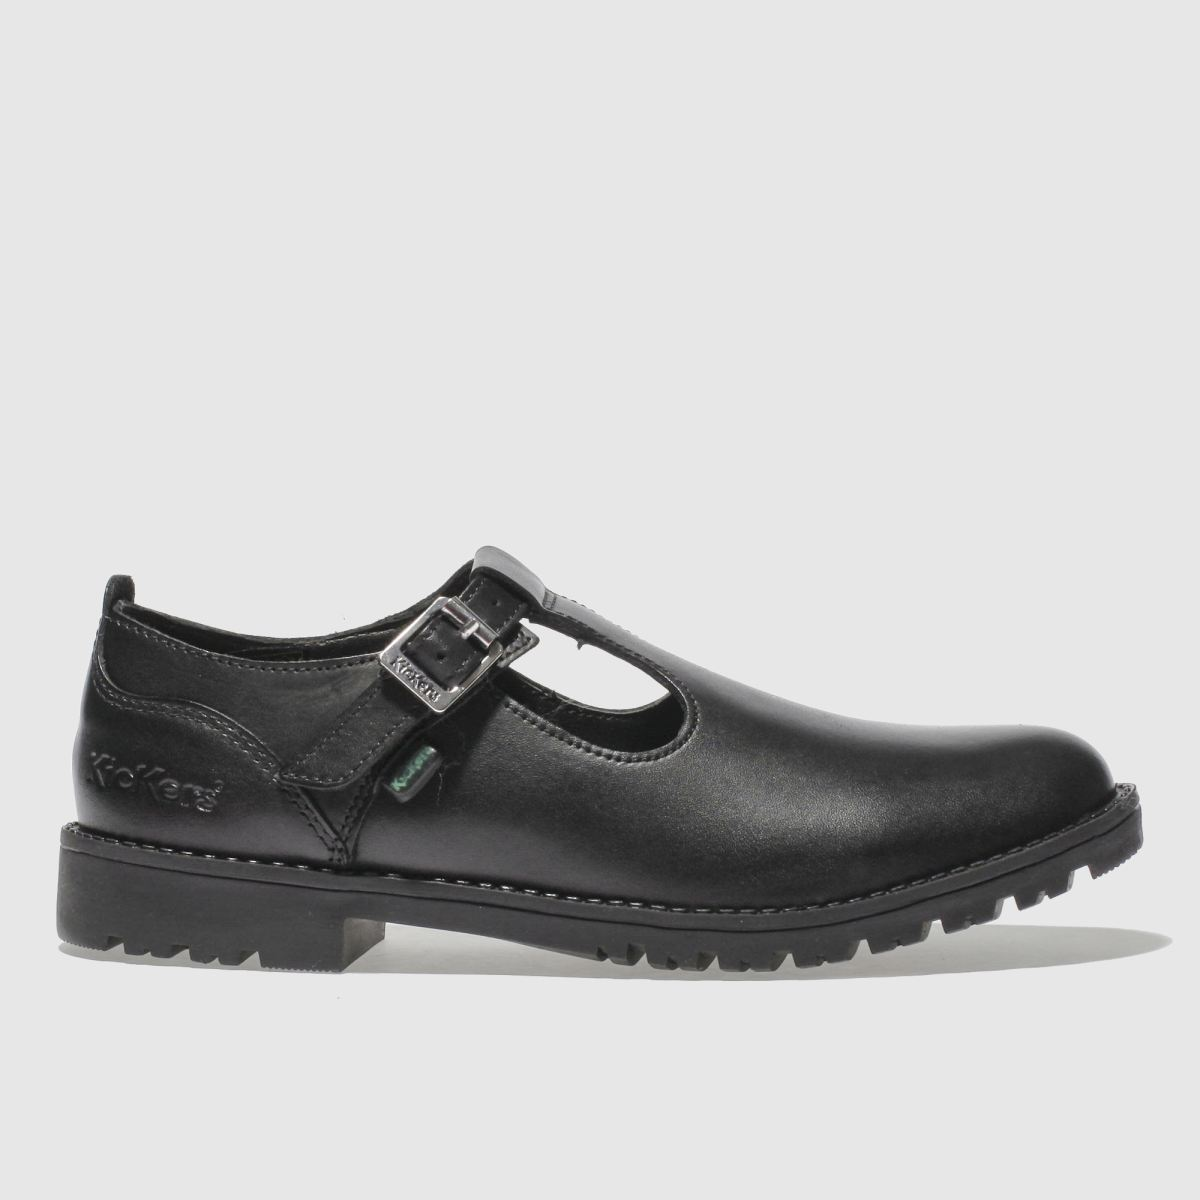 Kickers Black Lachly T Girls Junior Shoes